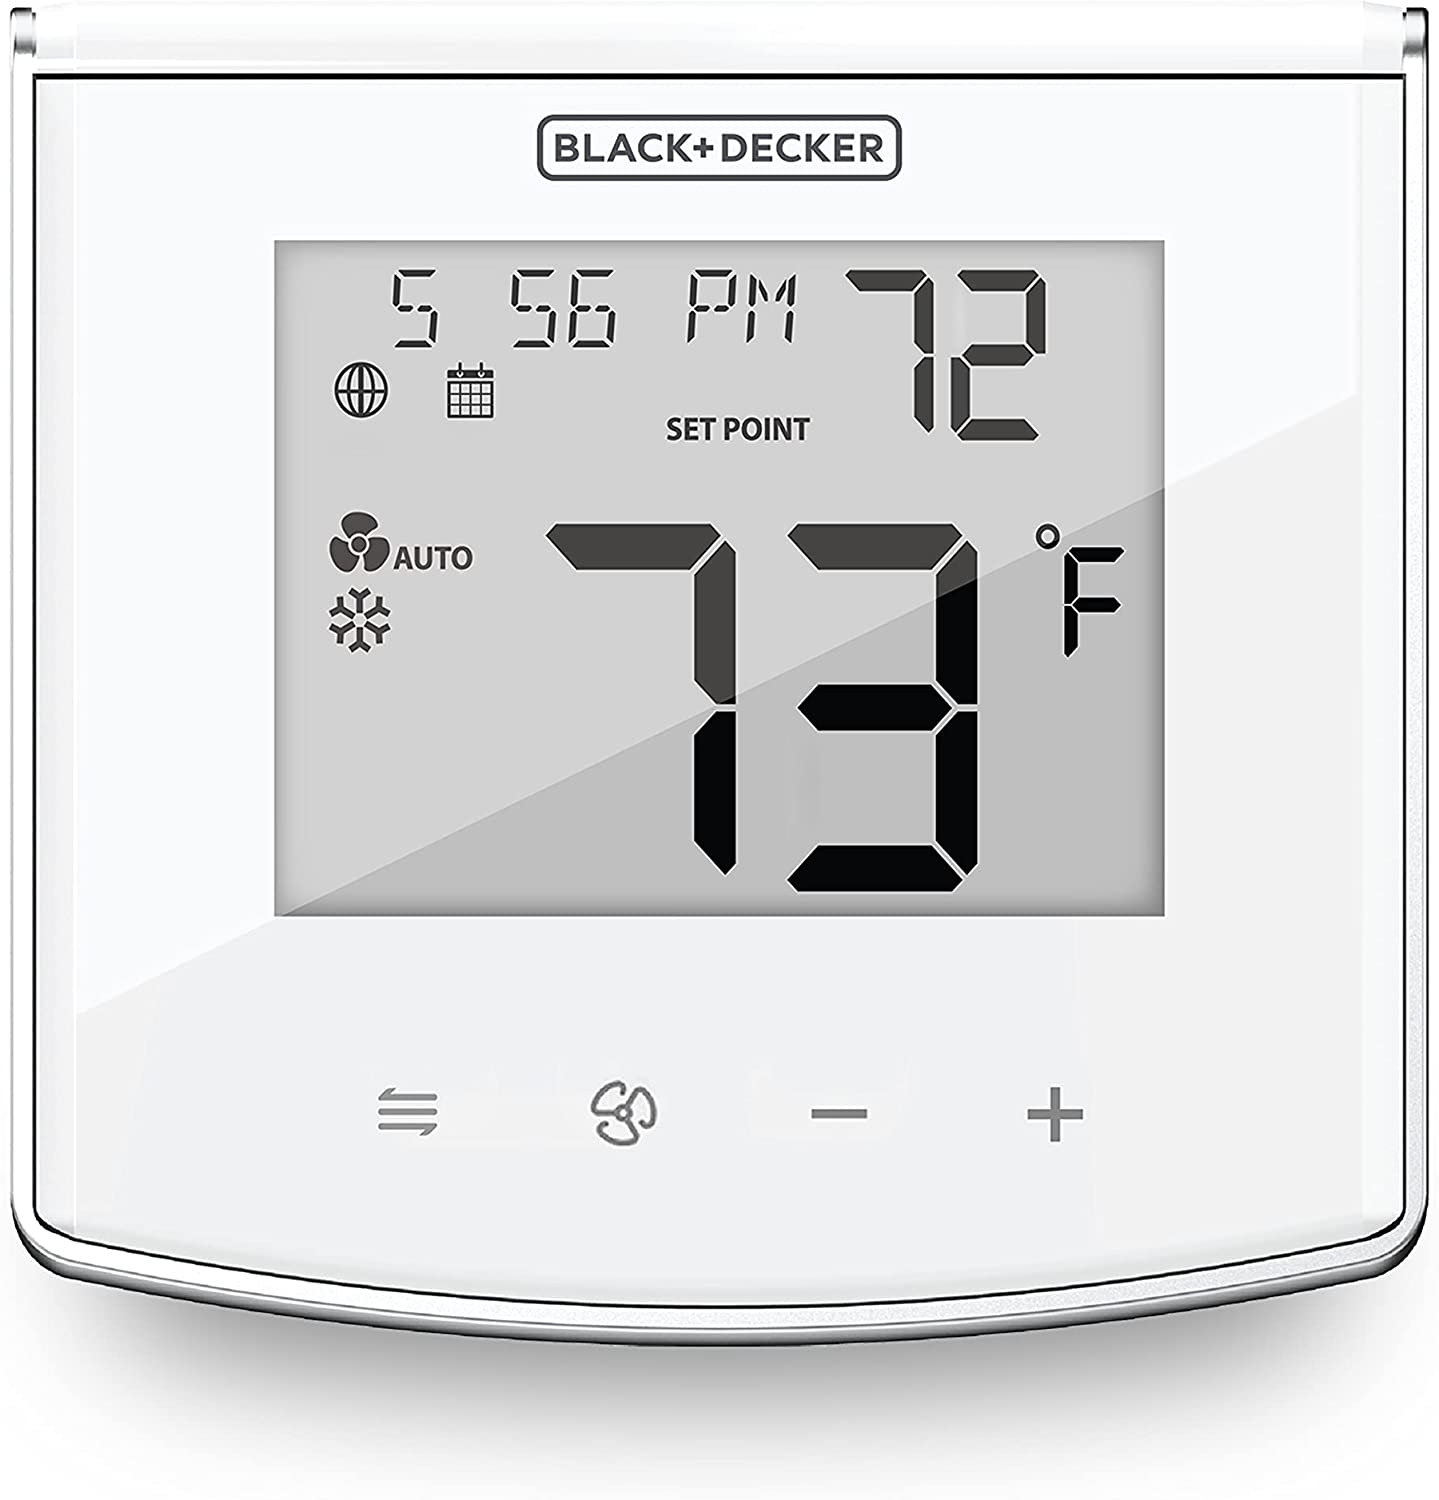 BLACK+DECKER Touch Key Wi-Fi Thermostat for Smart Home with Intelligent Programming, Convenient Mobile App, Four-Button Interface & Compatible with Alexa & Google Assistant, White (BDXTTSM1)